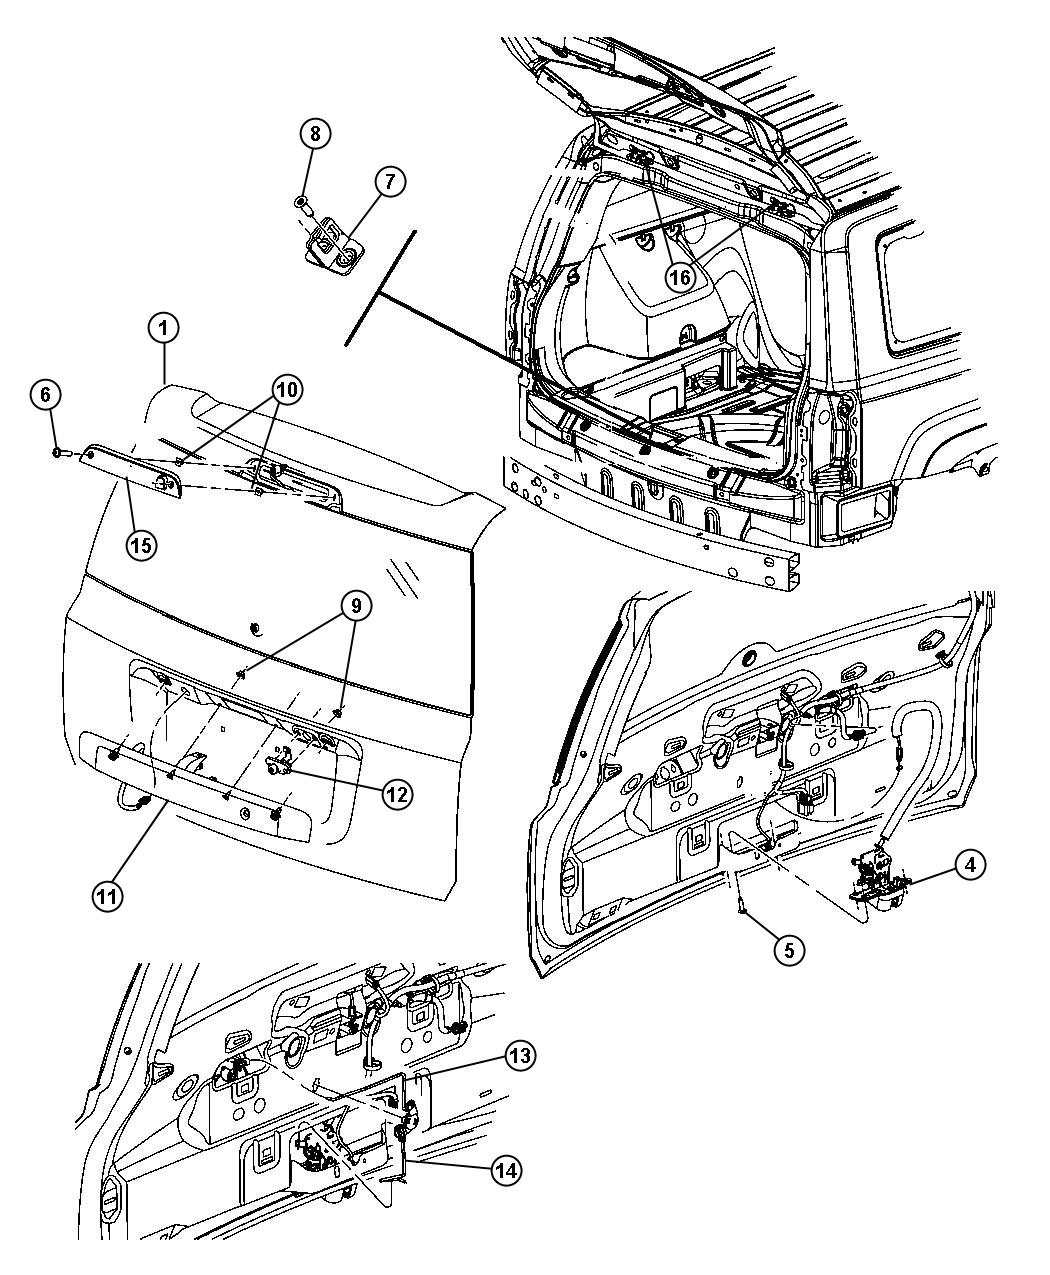 Mercedes Sprinter Heater Parts Diagram. Mercedes. Auto